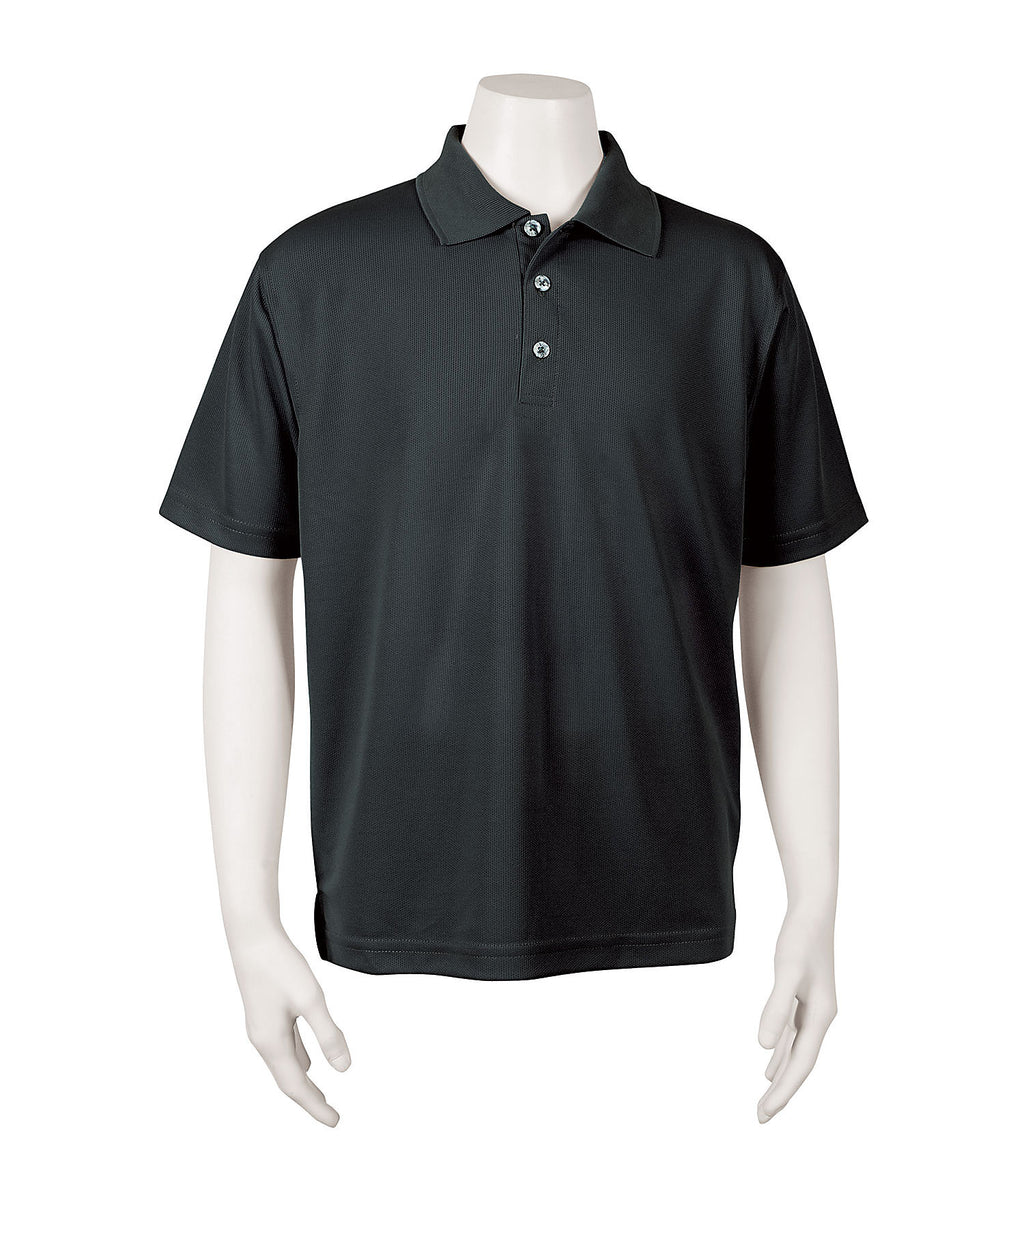 Youth Unisex Solid Mesh Polo